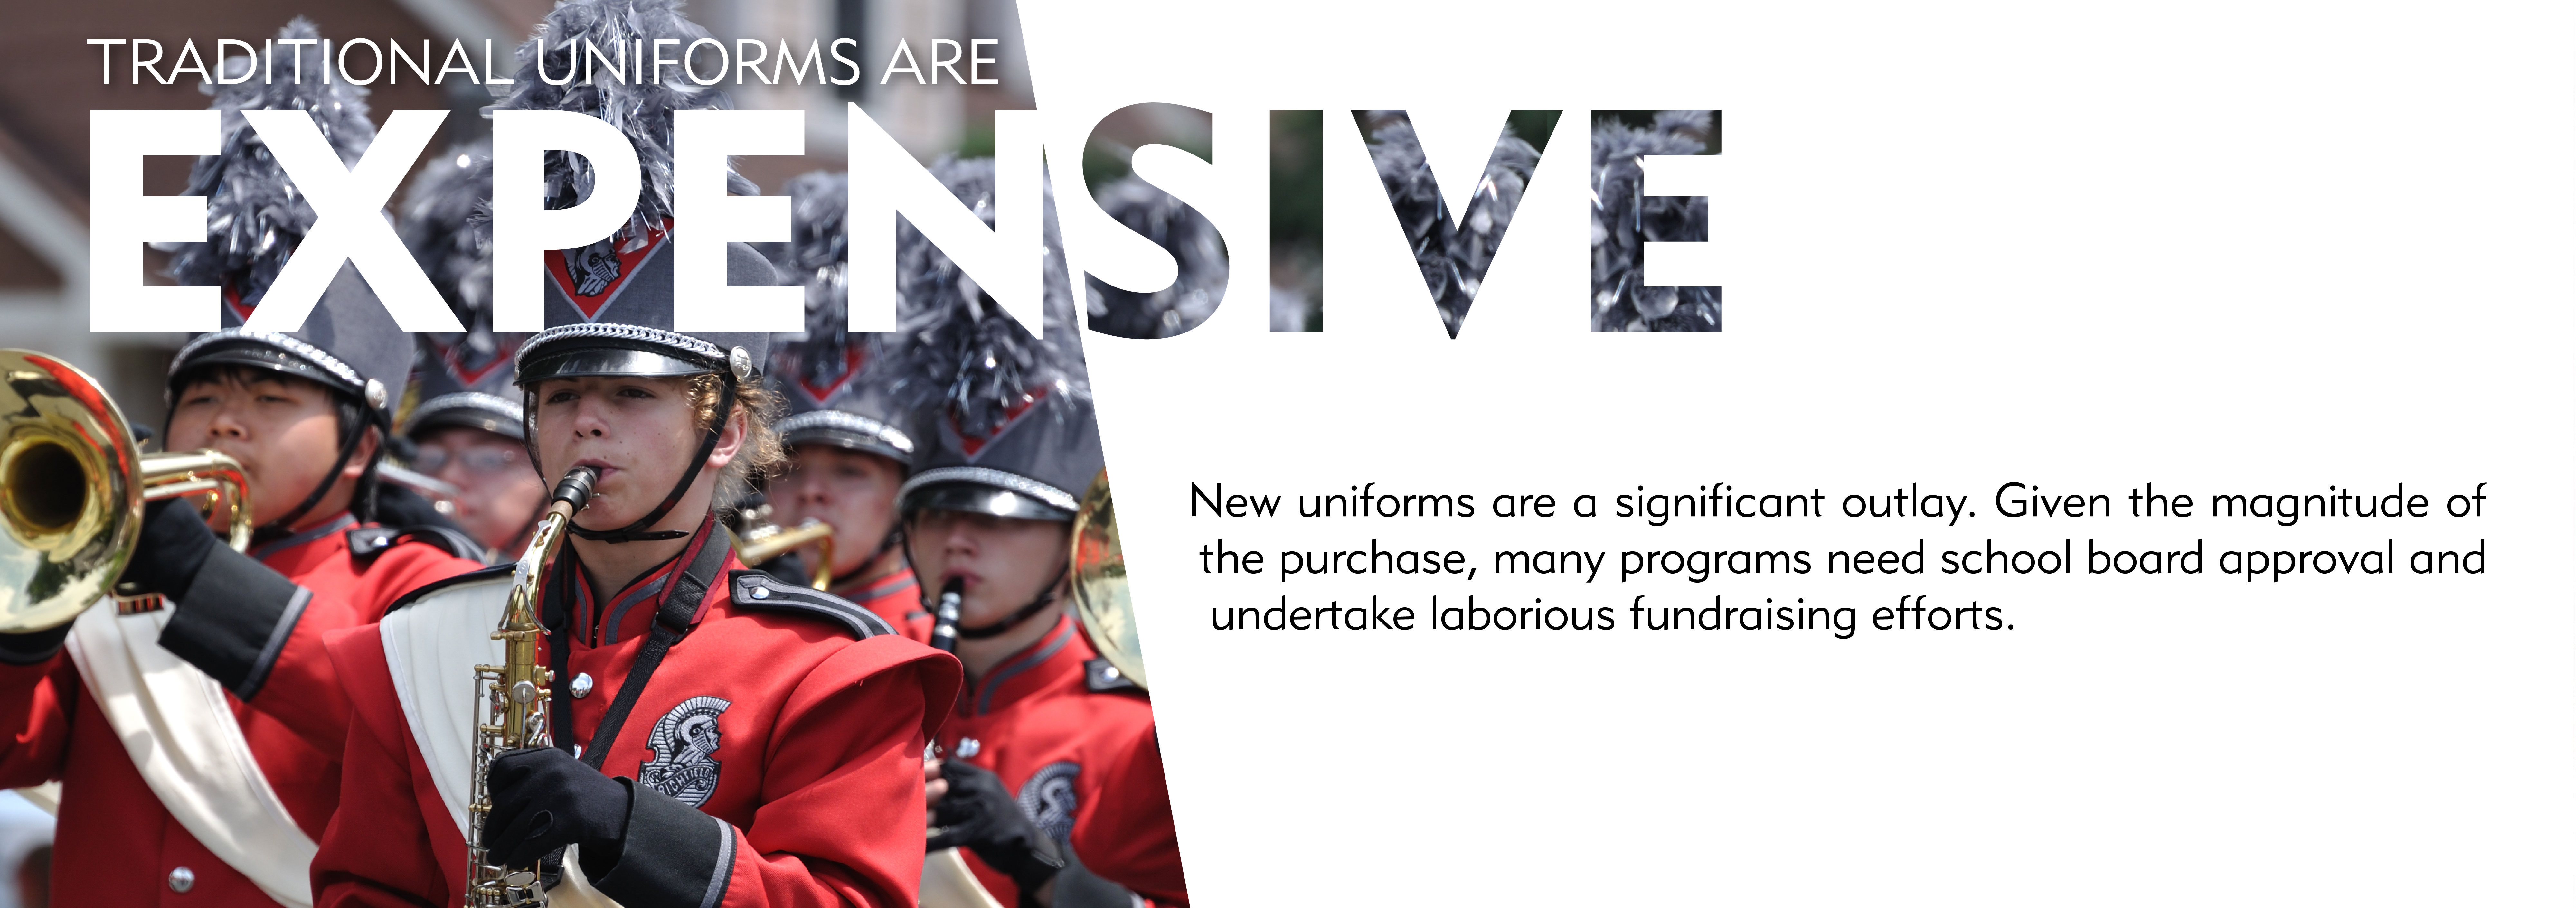 Marching band uniforms are expensive. New uniforms are a significant outlay. Given the magnitude of the purchase, many programs need school board approval and undertake laborious fundraising efforts.